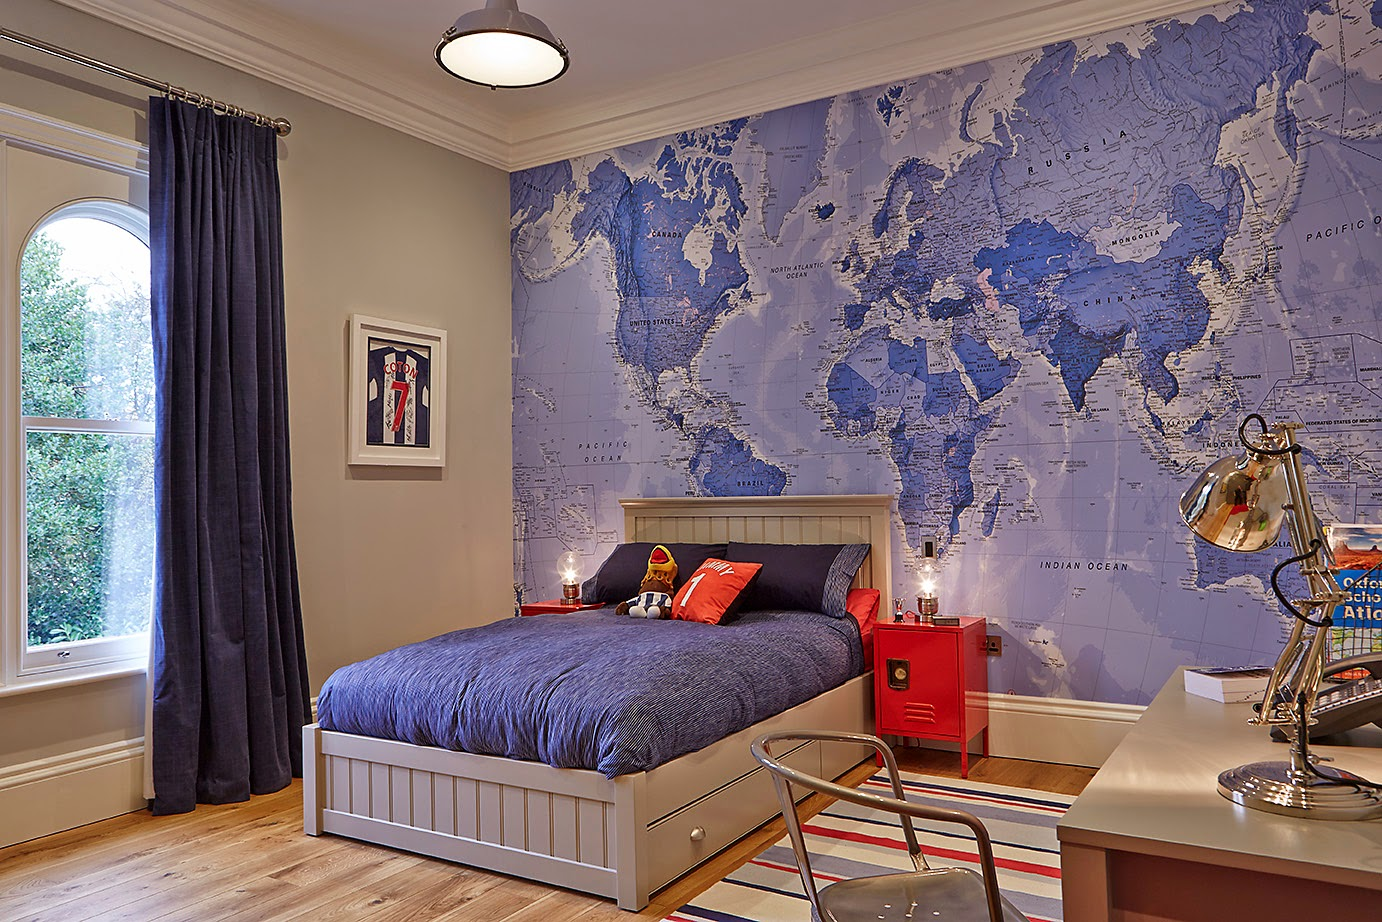 Madhouse family reviews giveaway 473 win a world map mural after all this beautiful sunny weather that weve been having lately ive got my sights firmly fixed on the summer holidays and have been idly dreaming gumiabroncs Choice Image